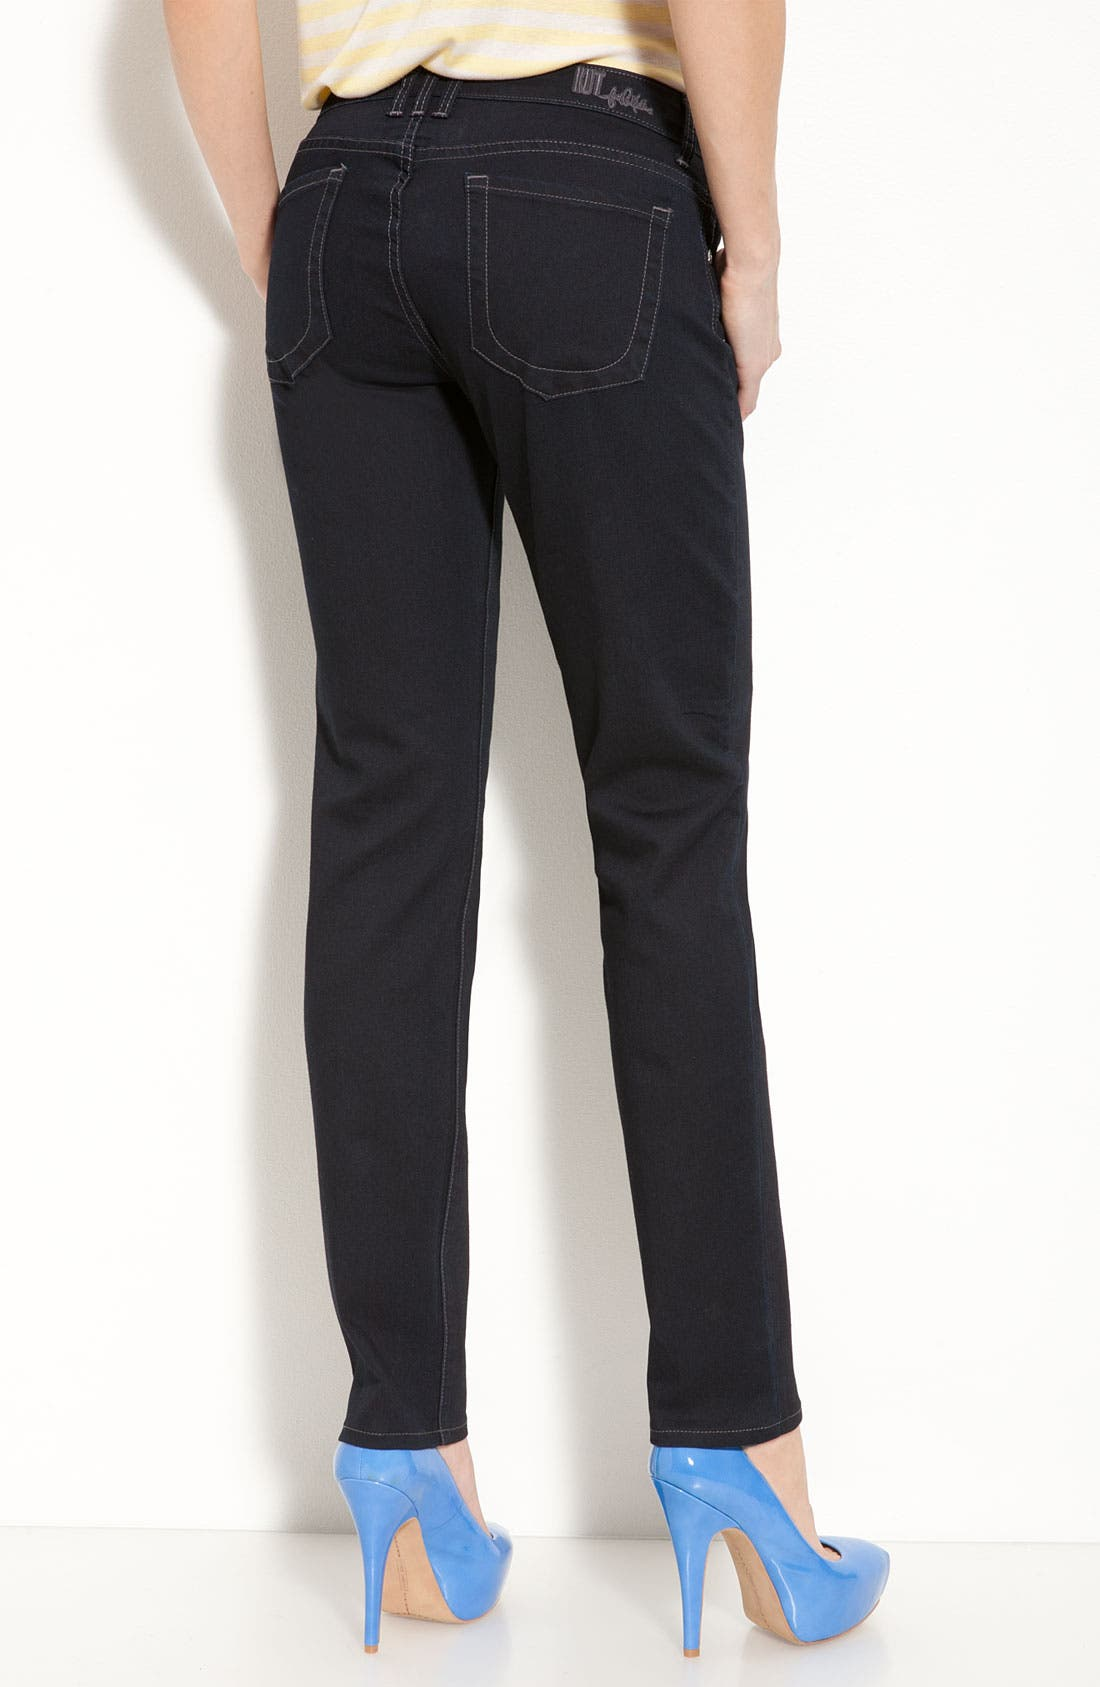 Alternate Image 2  - KUT from the Kloth 'Diana' Skinny Jeans (Delight Wash) (Online Only)